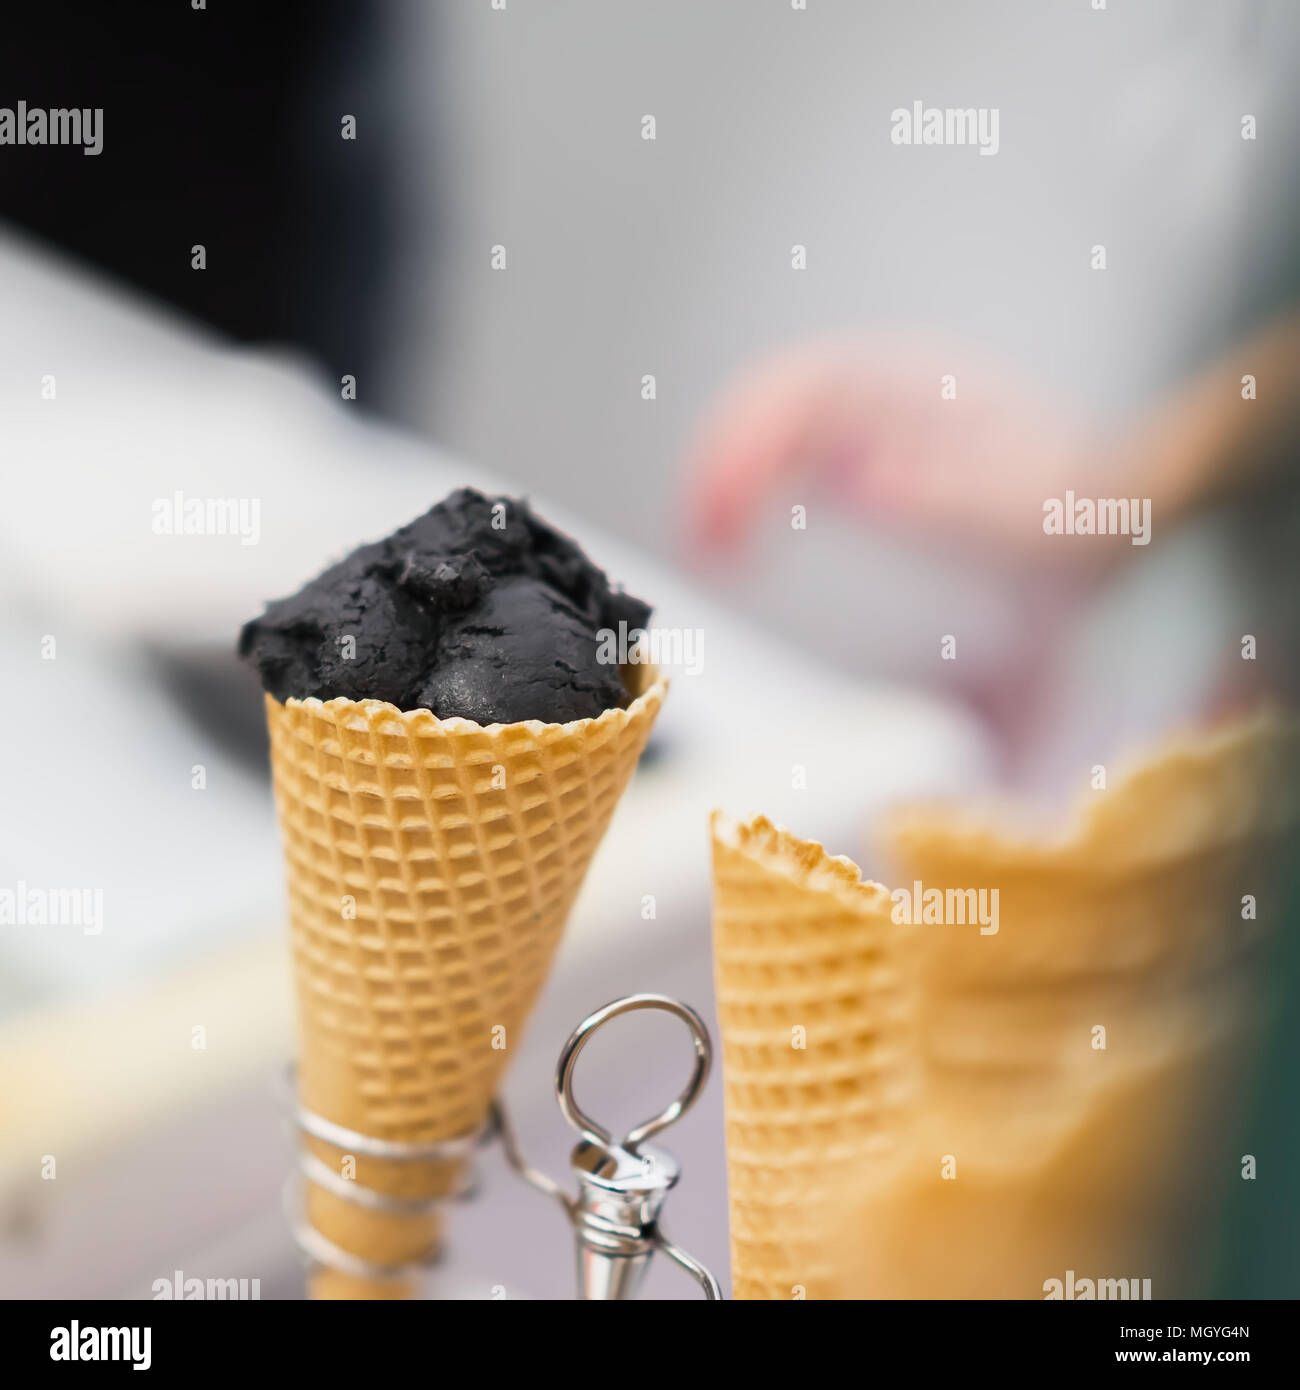 Close-up of waffle cone with ball of trendy black ice cream. Delicious cooling portion on a hot day and just for fun. Selective focus. Real scene in s - Stock Image